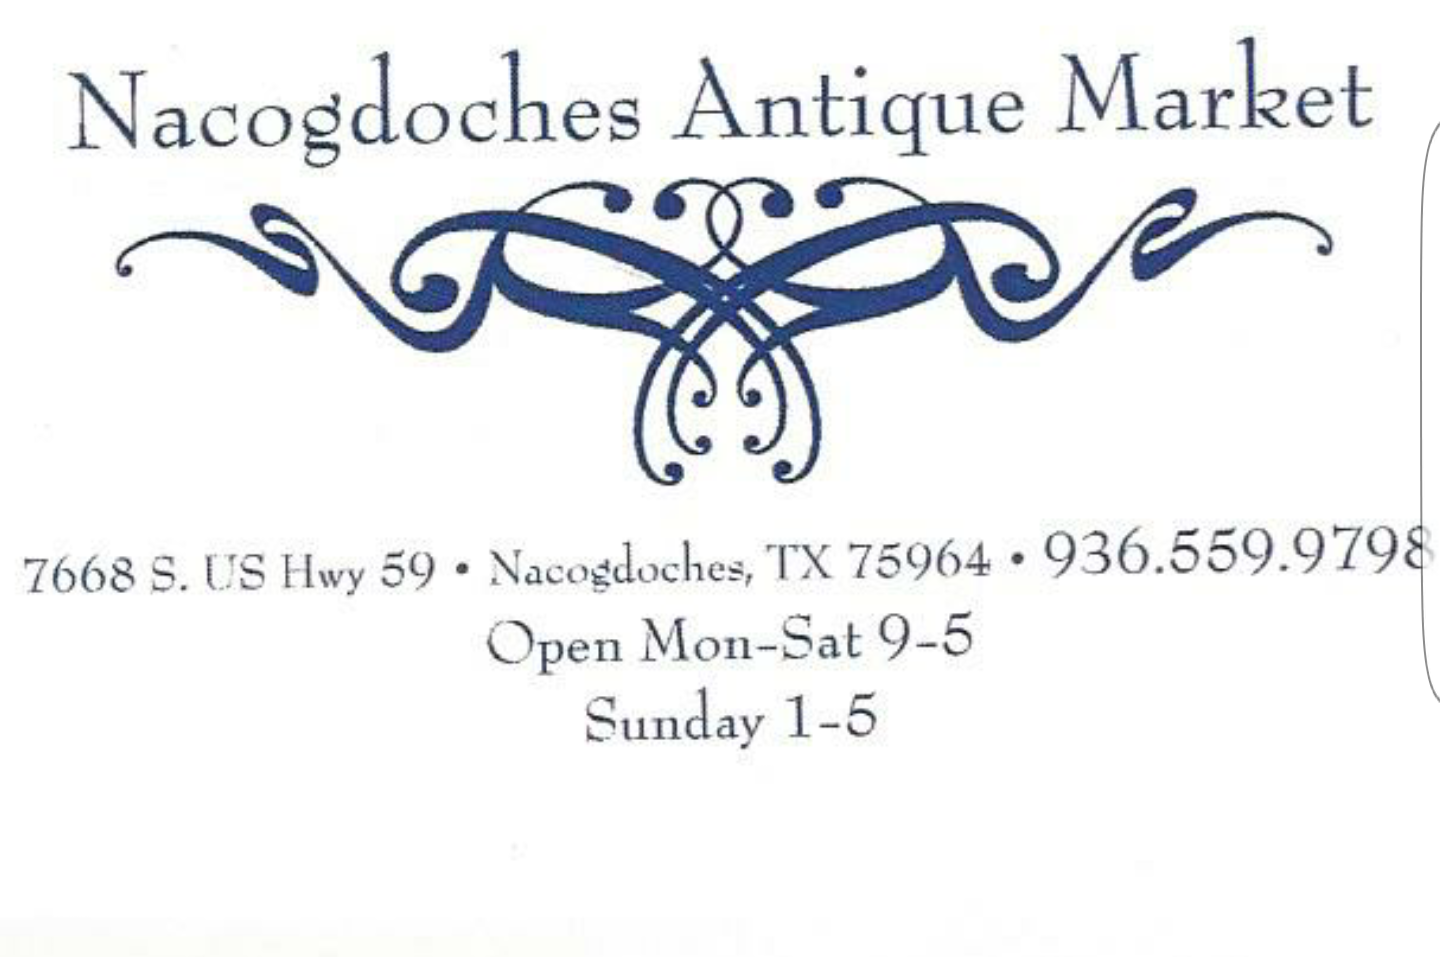 Nacogdoches Antique Market